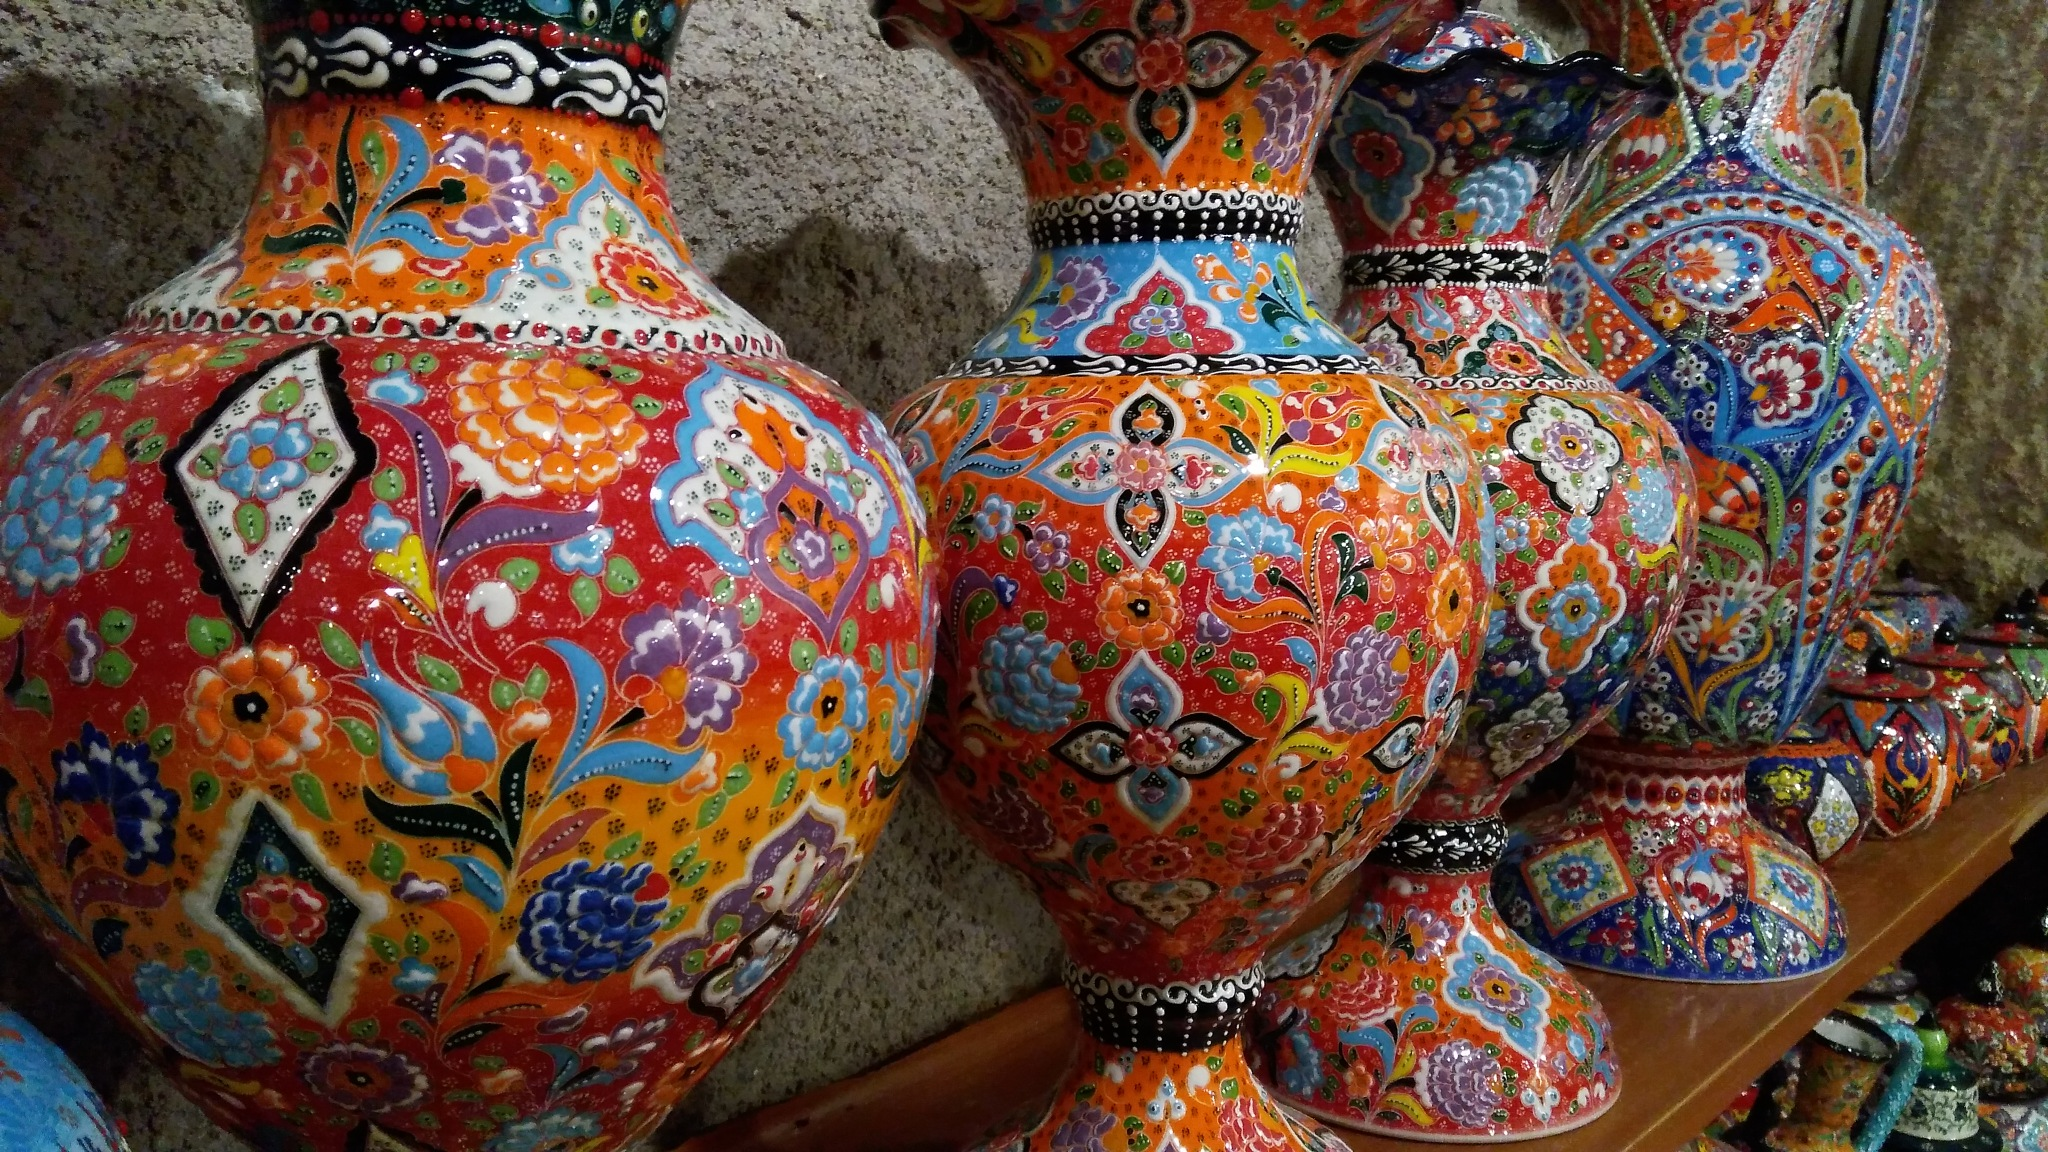 Ceramic vases in Cappadocia by allaboutturkey